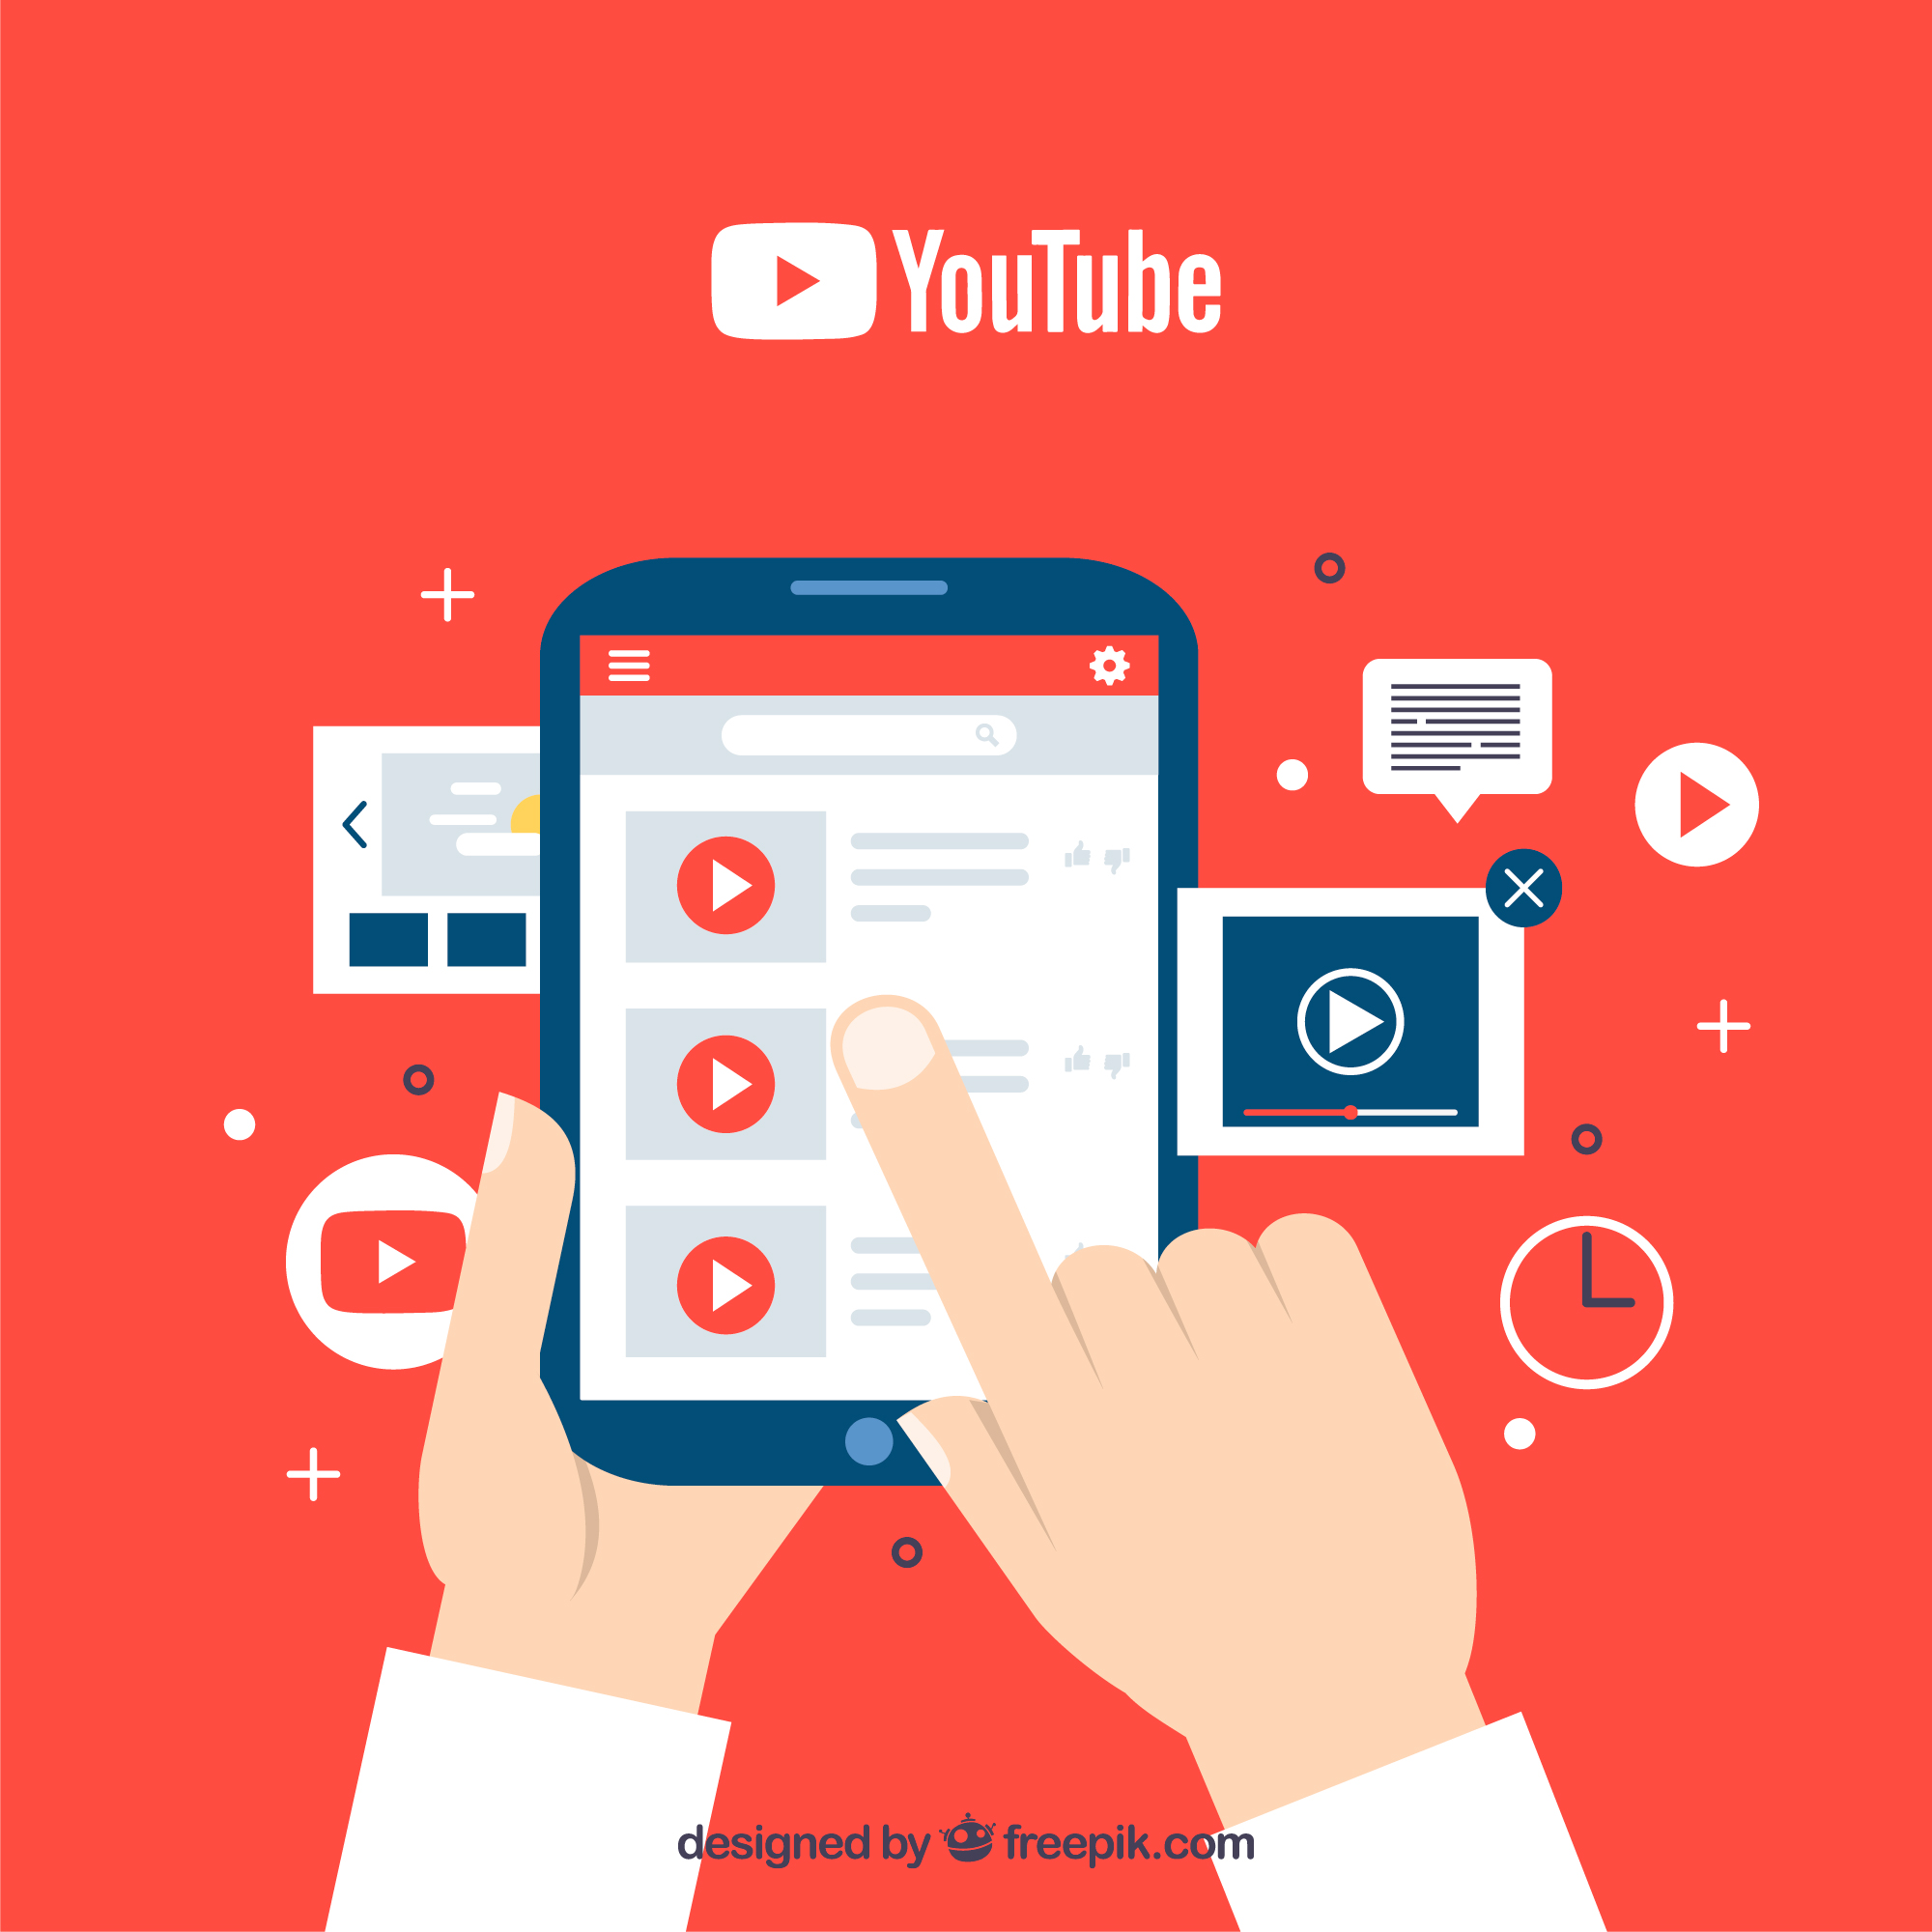 A Beginner's Guide To YouTube Marketing